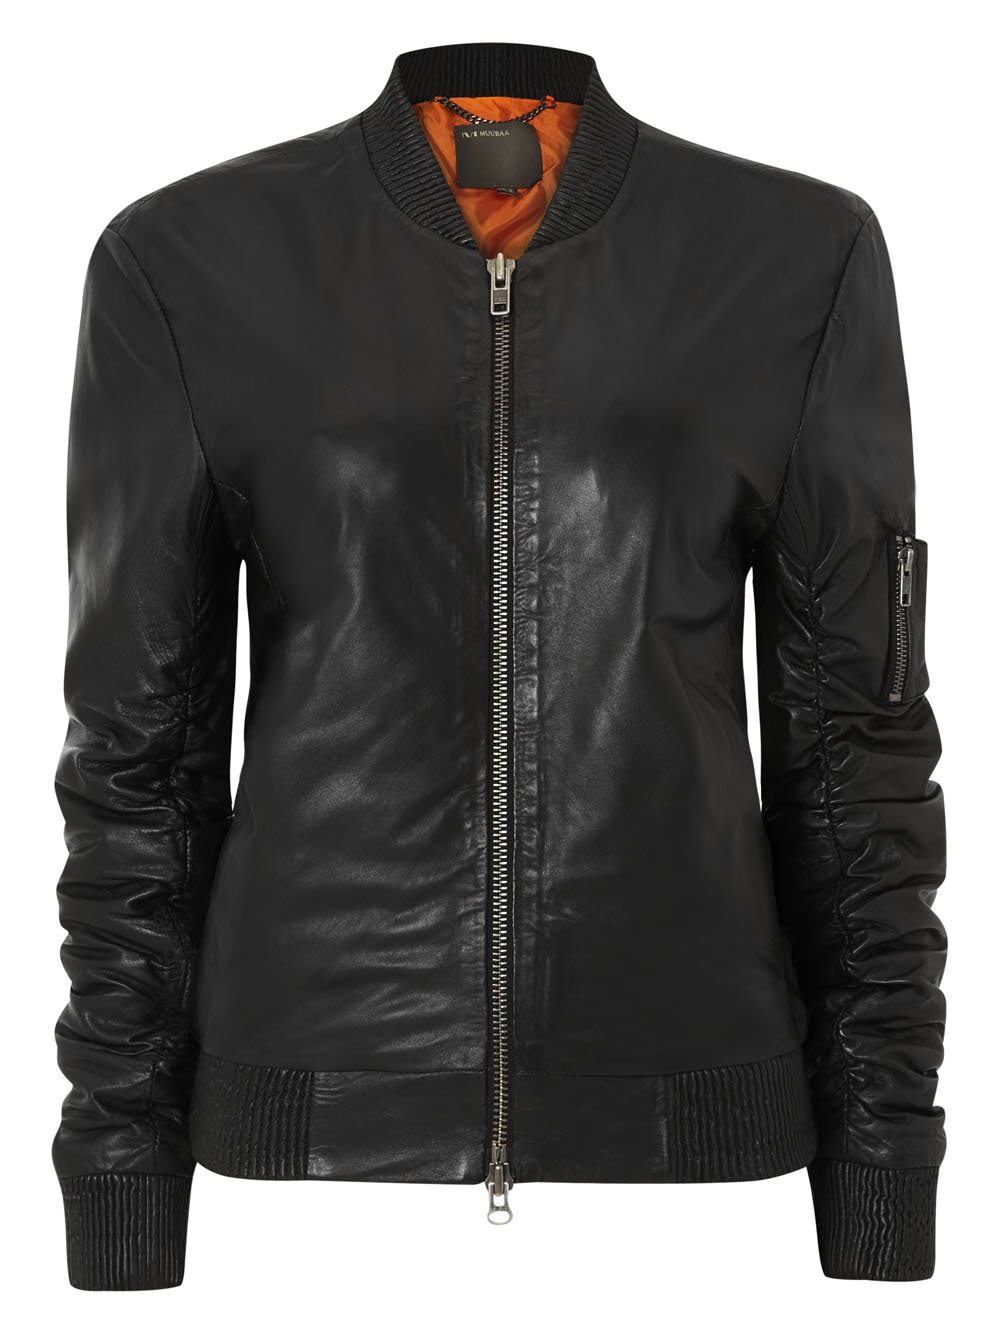 Shop Bomber Jackets for Men at PacSun and enjoy free shipping on orders over $50! LAST DAY! Up Bomber Jackets Leather Jackets Filters Go. Refine Your Results By: Quiksilver Special Offers Buy One Get One 50% Off Now 30% Off Shop By Color White Red Blue Green Brown Grey Black Multi Shop By Size S M L XL XXL Shop By Price $50 - $75 $